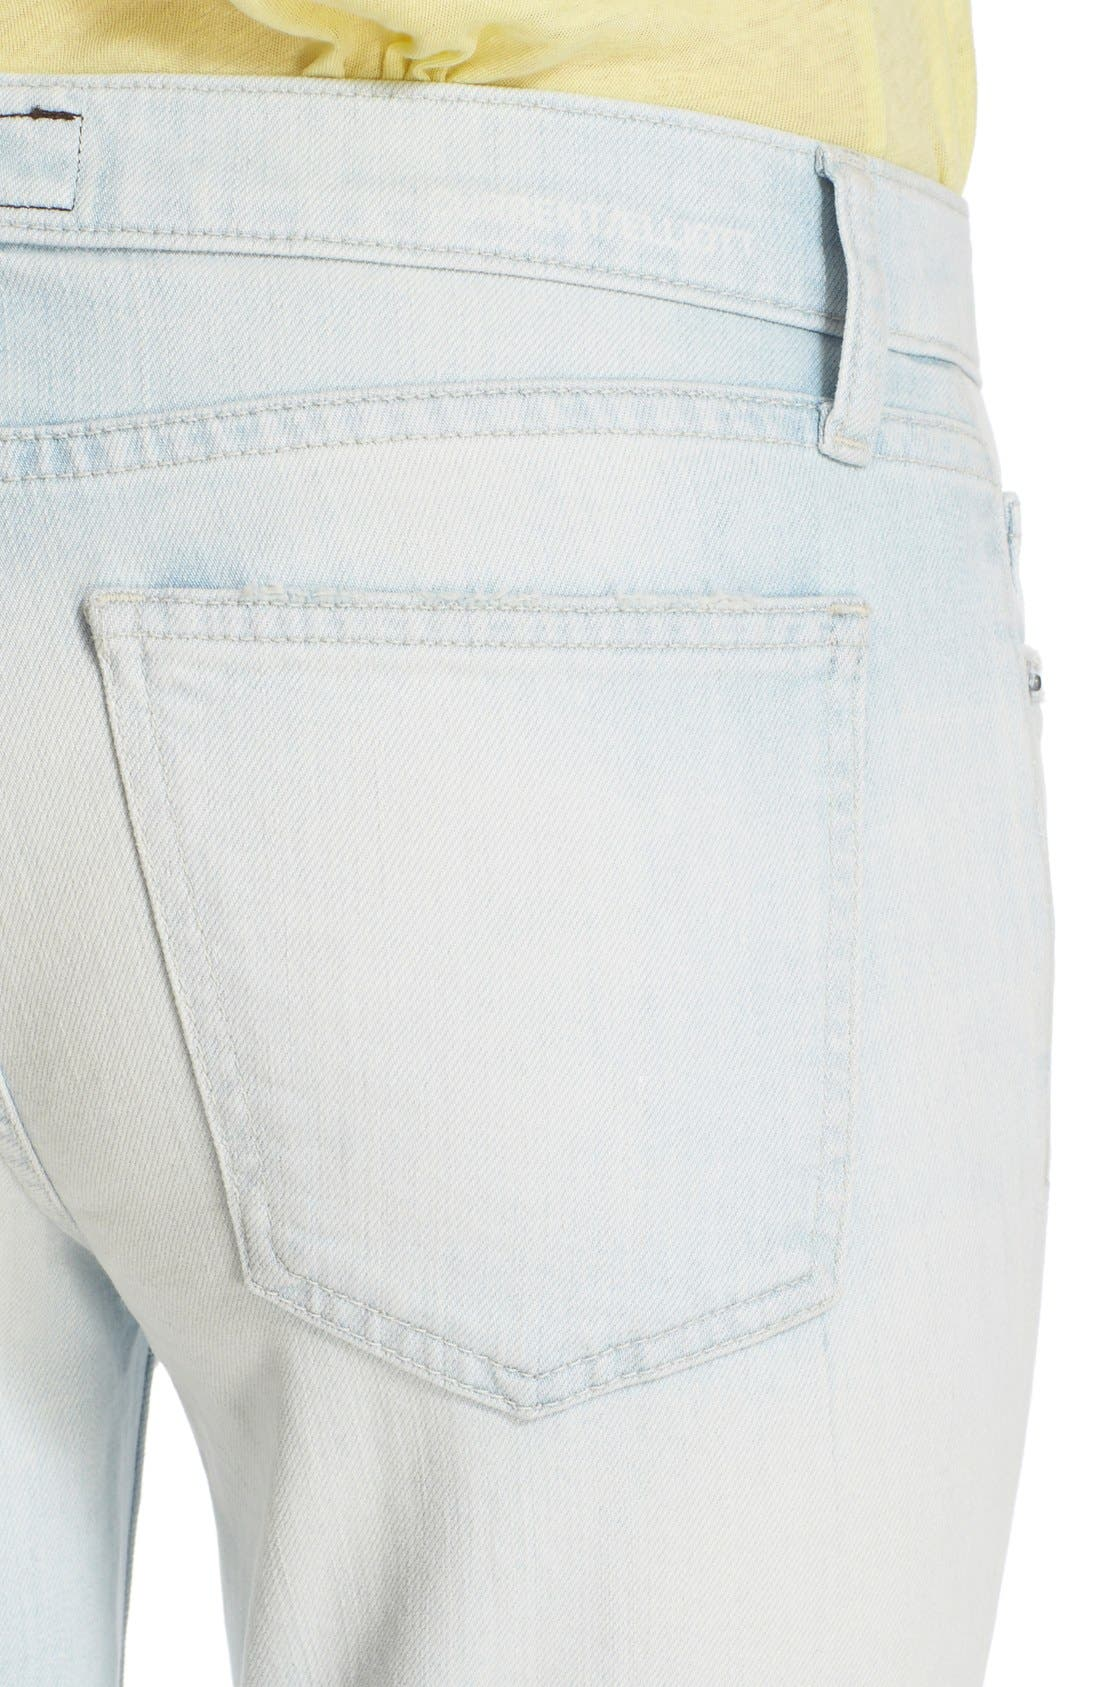 'The Stiletto' Destroyed Skinny Jeans,                             Alternate thumbnail 37, color,